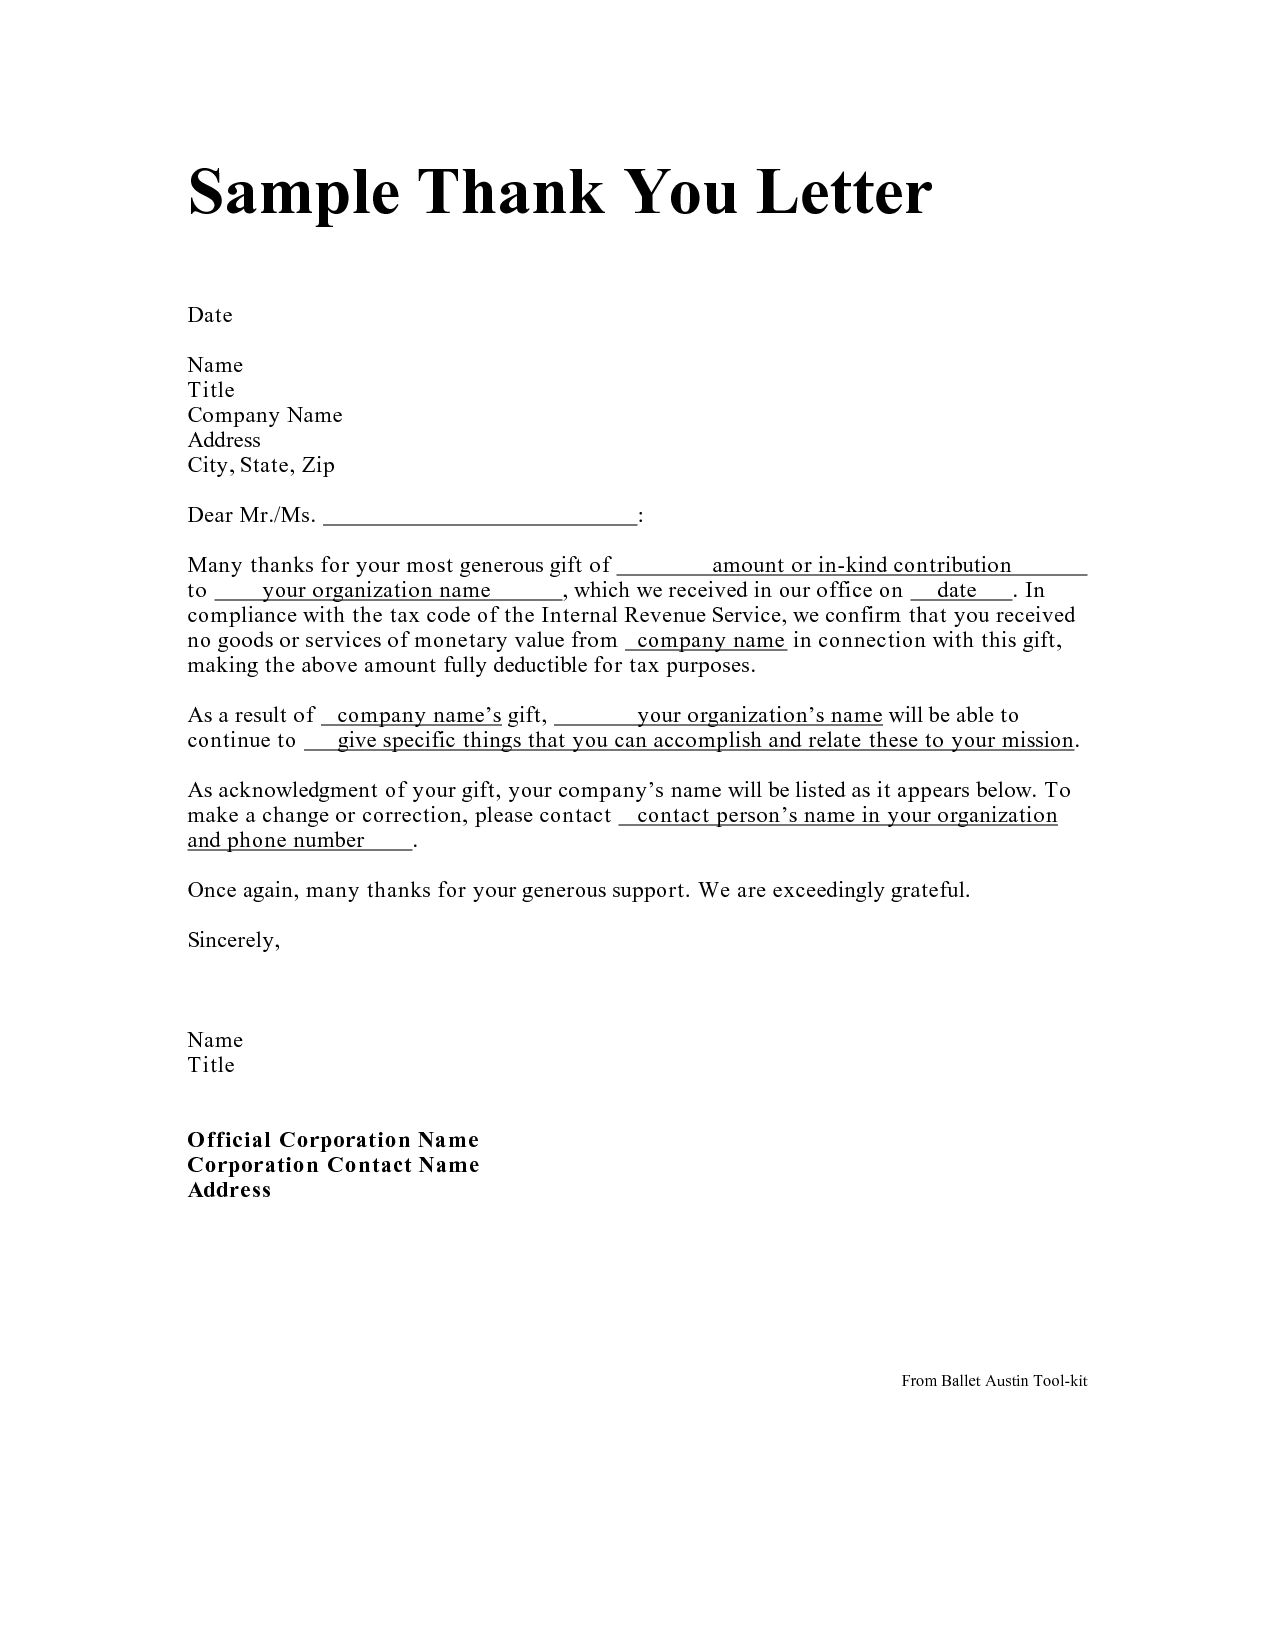 Sample thank you letter format choice image letter format formal professional thank you letter format dolapgnetband expocarfo